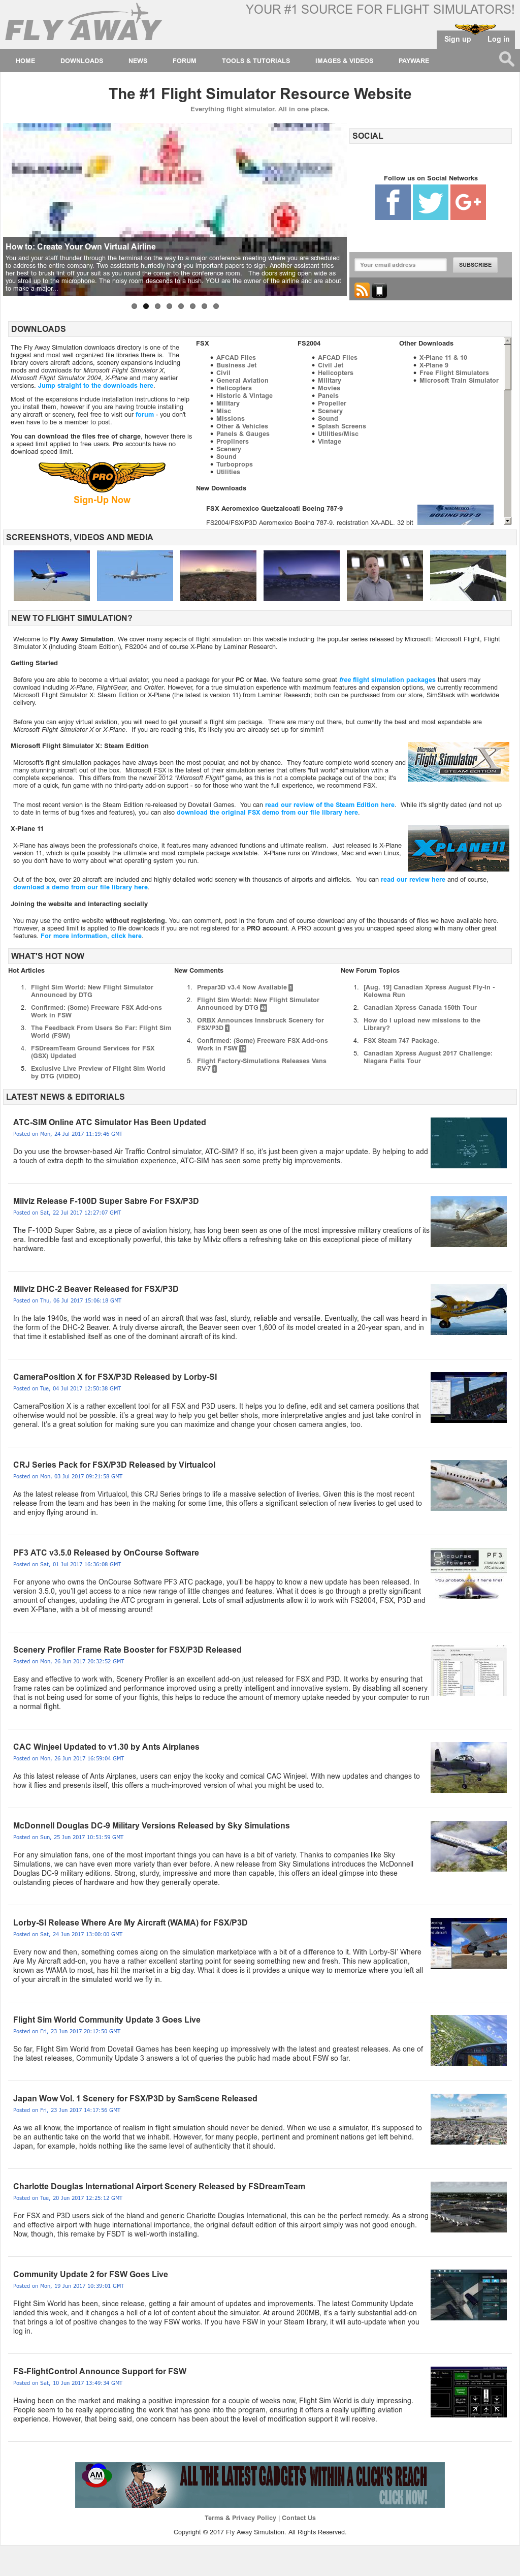 Owler Reports - Press Release: Fly Away Simulation : Fly